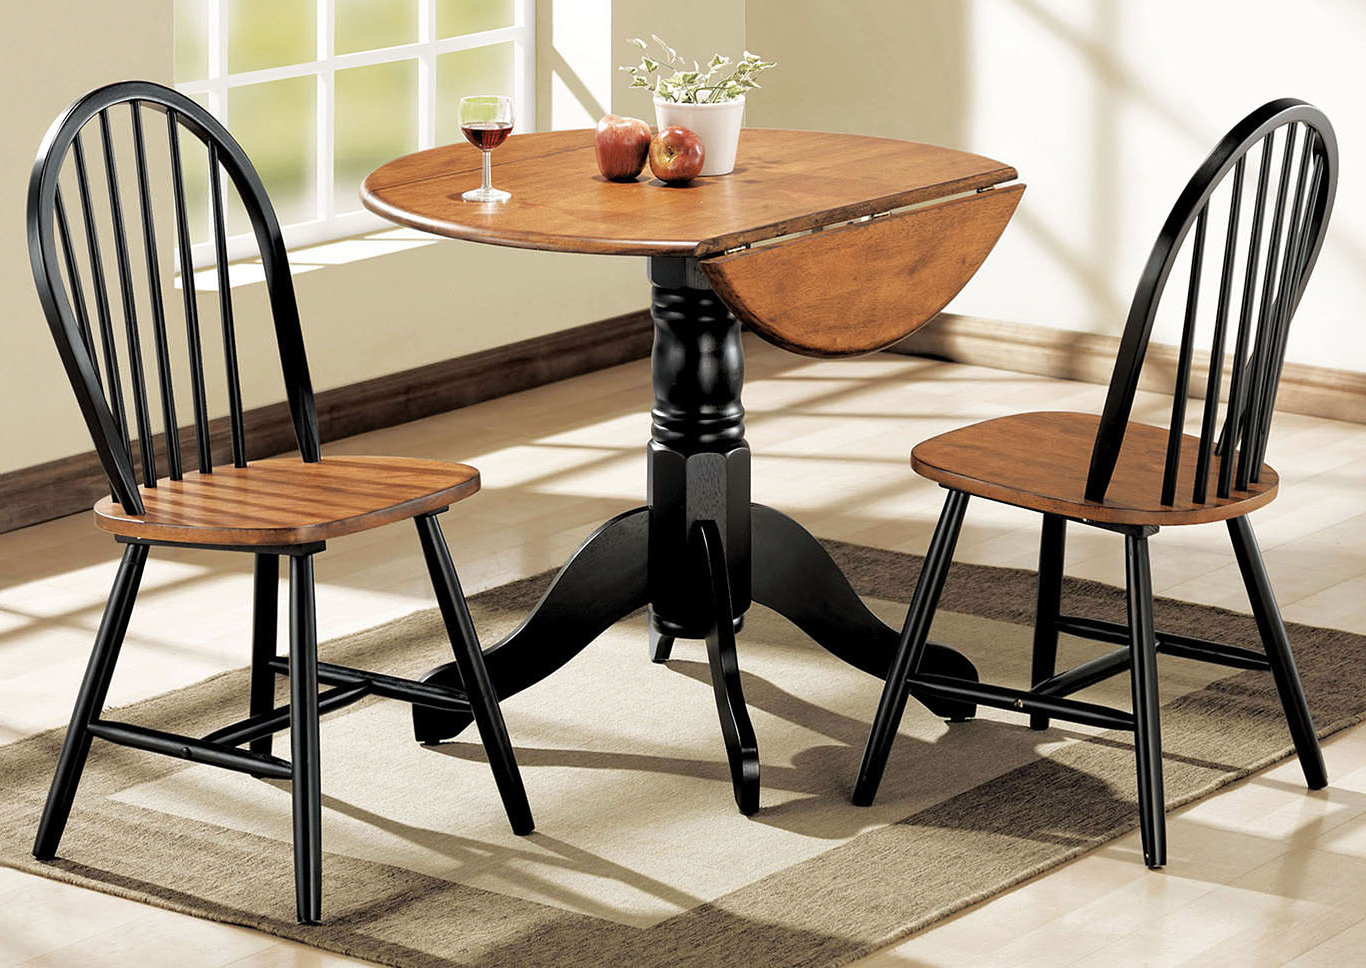 Trendy Transitional 3 Piece Drop Leaf Casual Dining Tables Set With Regard To Wine Country Furniture Mason Cherry/black Dining Set (Set Of 3) (View 21 of 25)